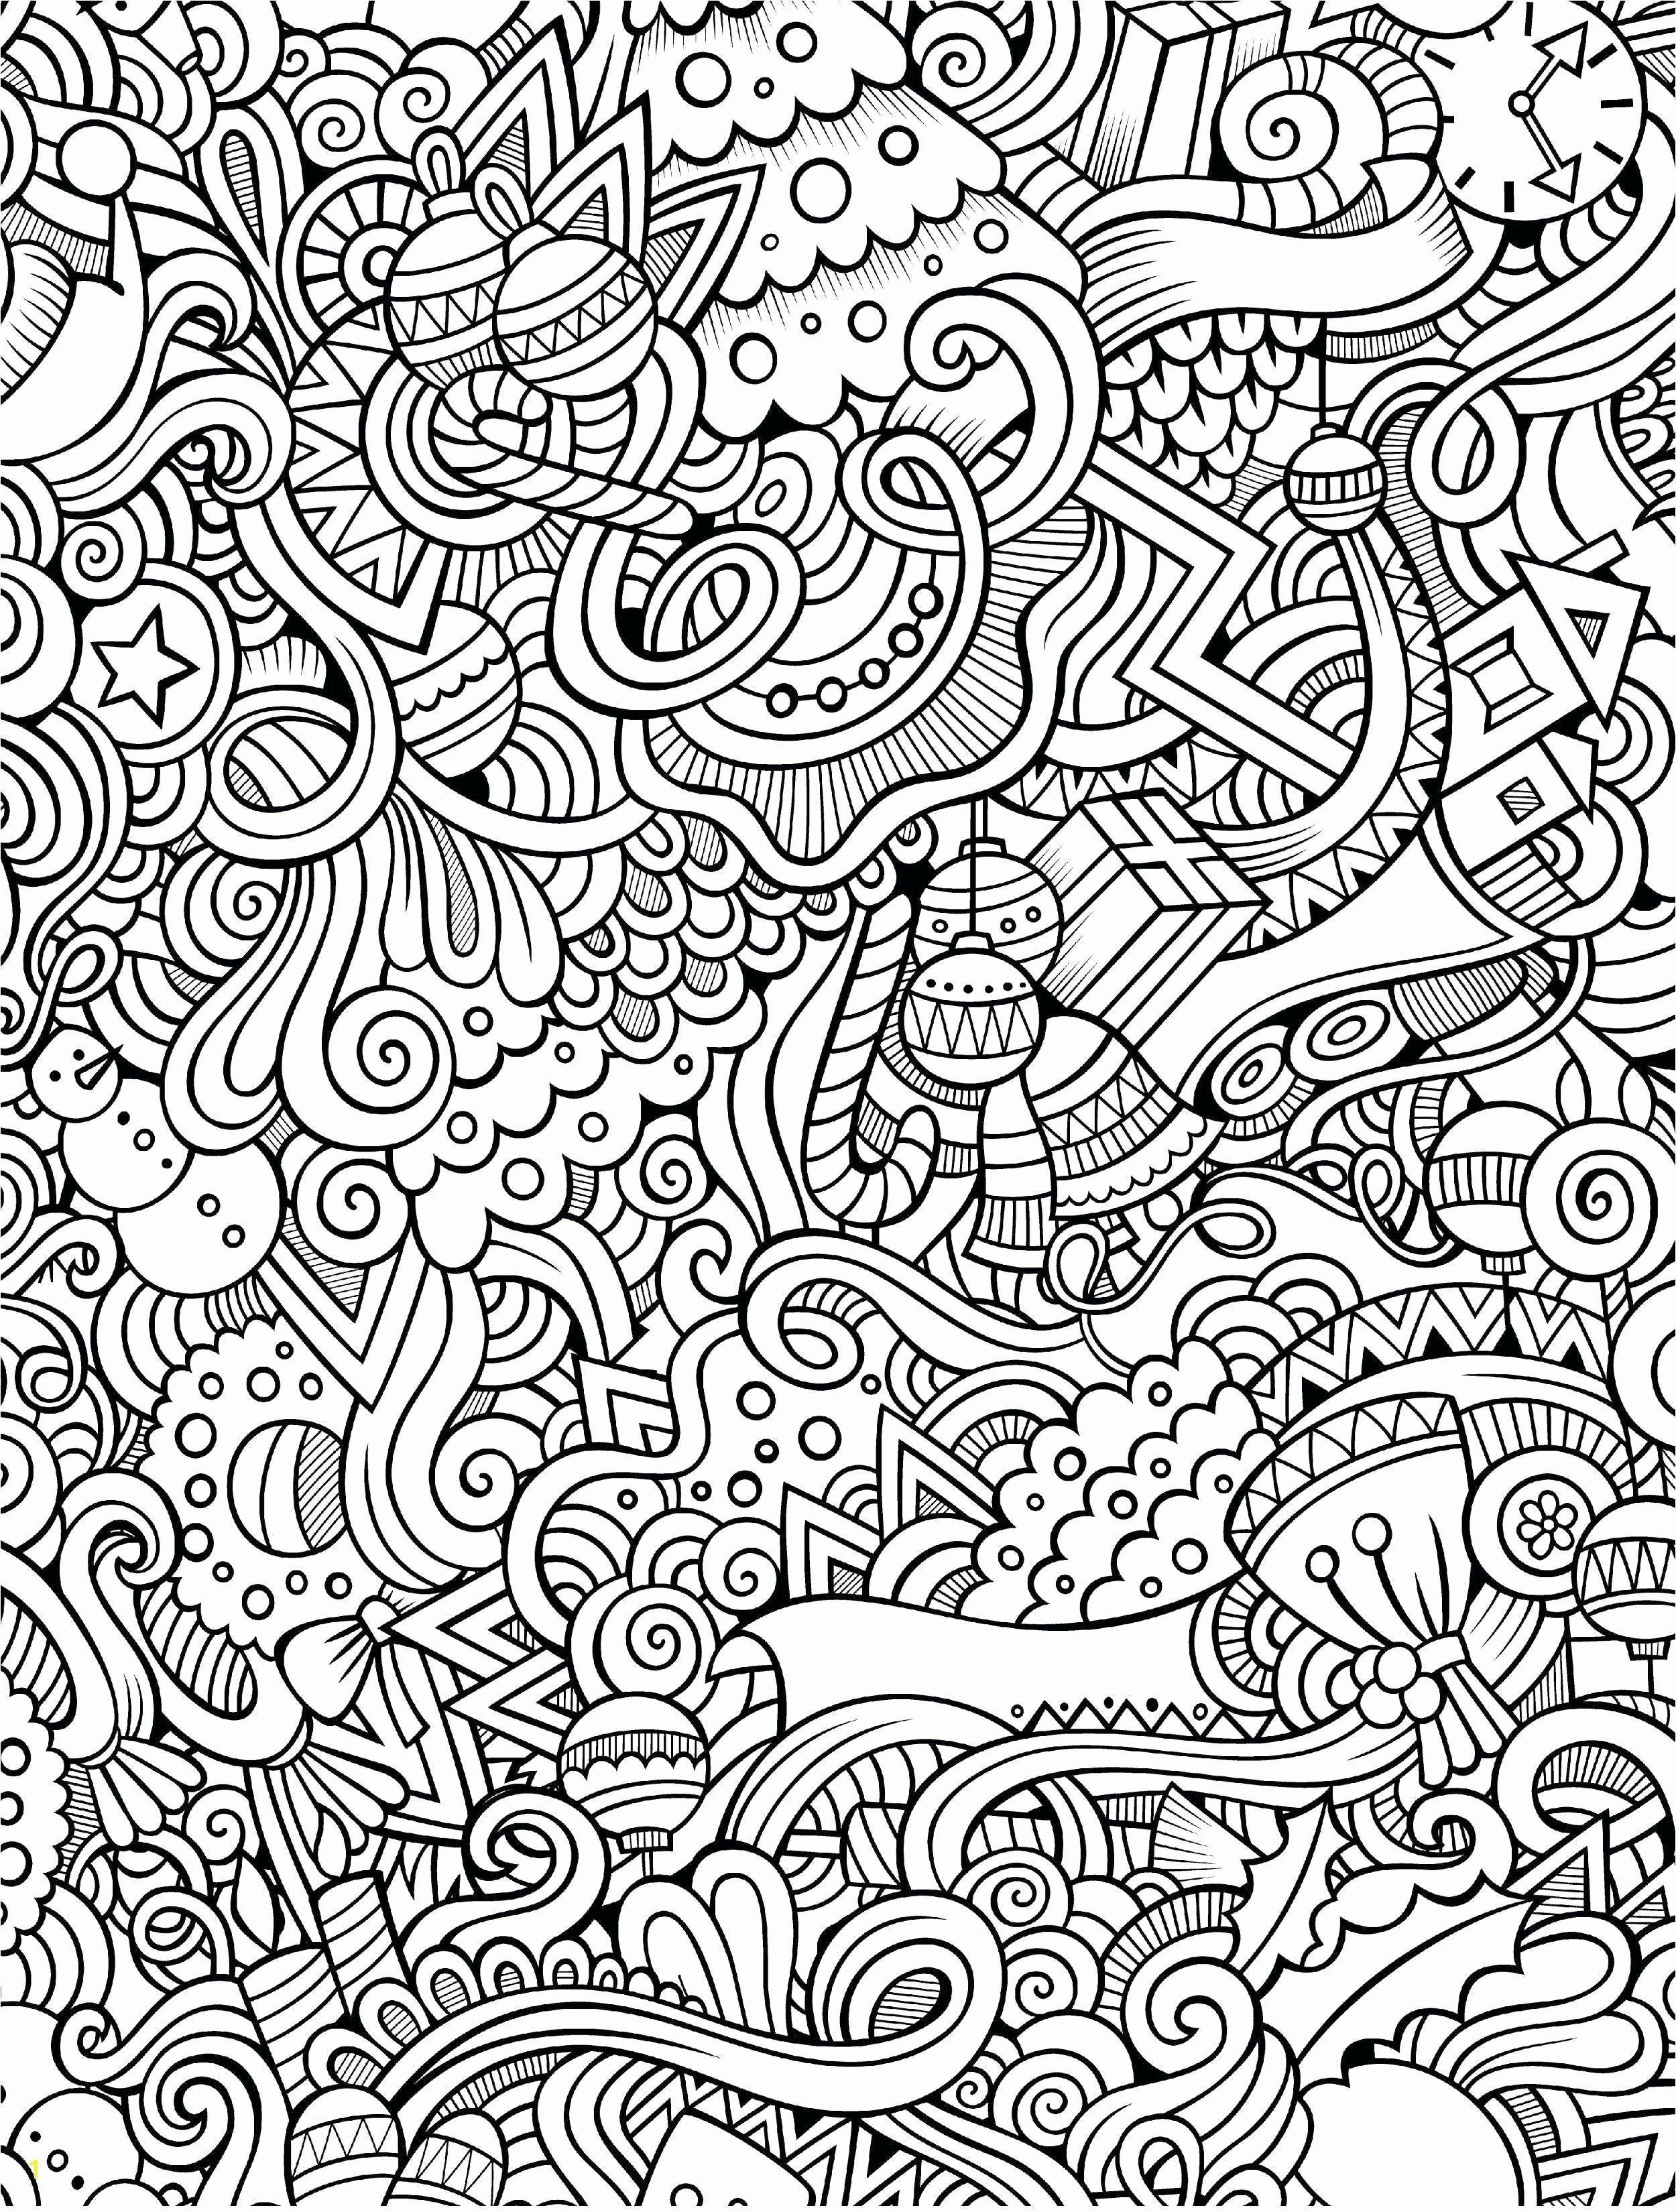 Pin On Coloring Pages As Meditation